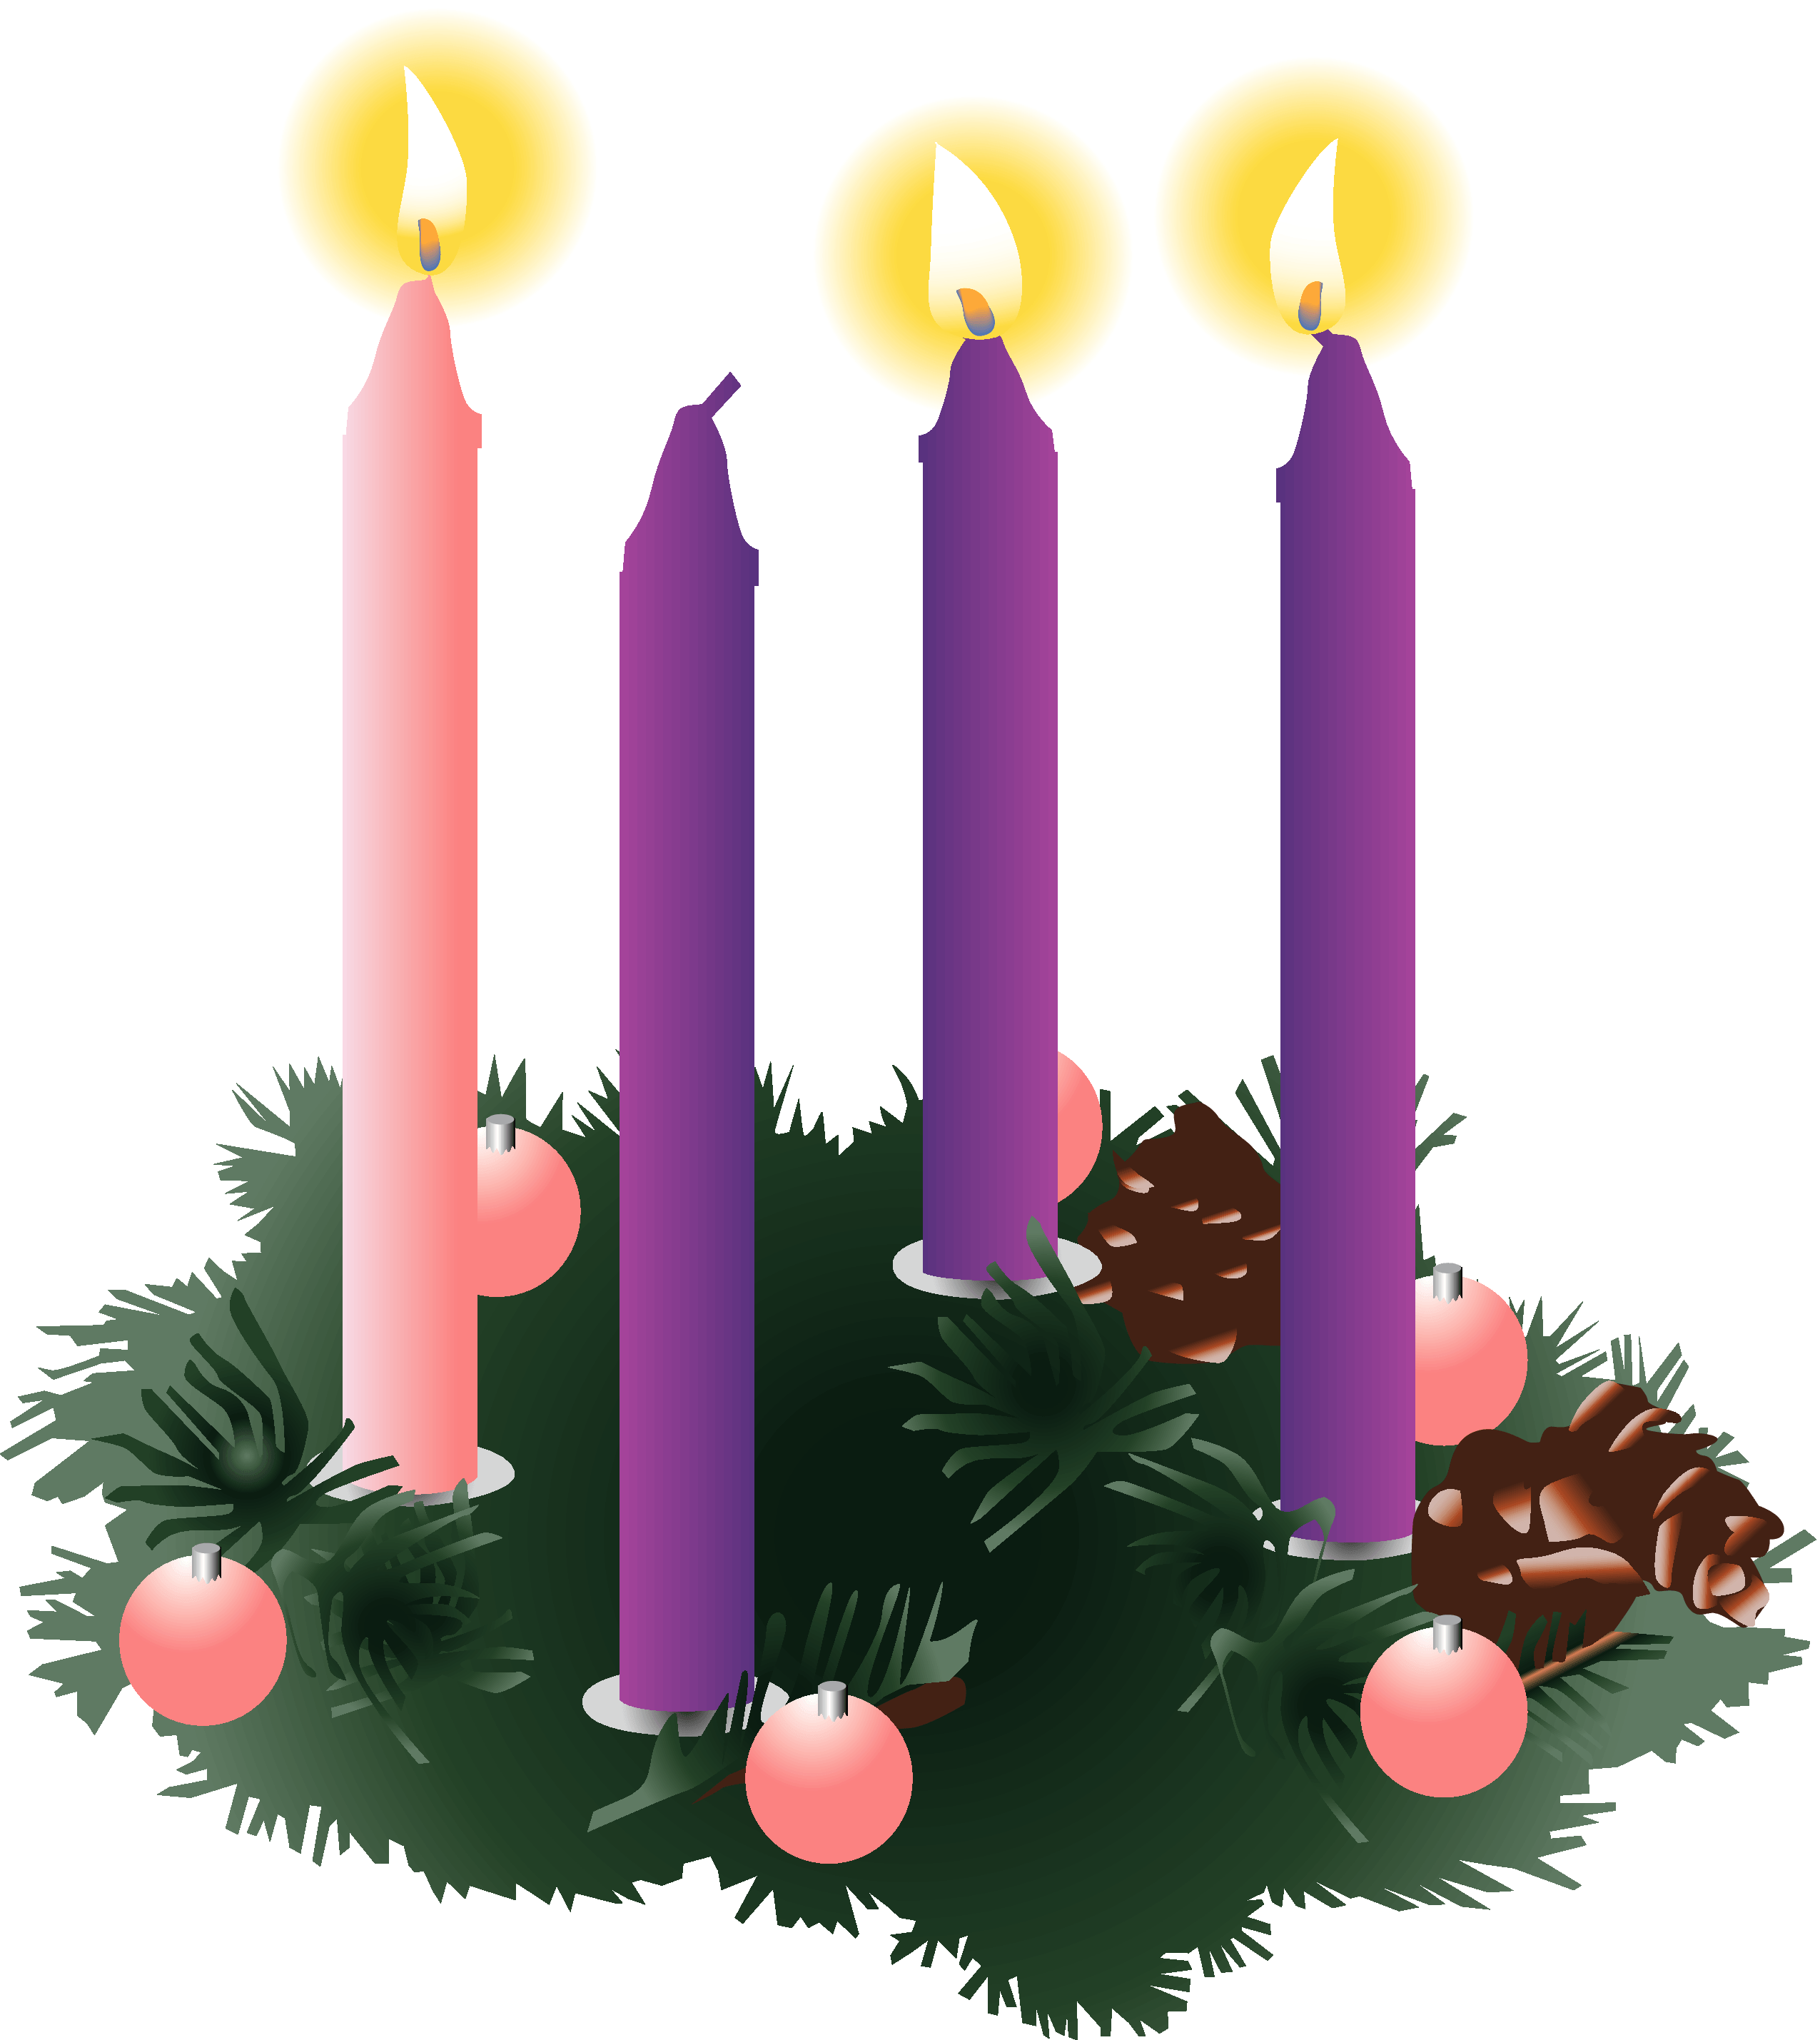 Candles png three. Four purple advent lit